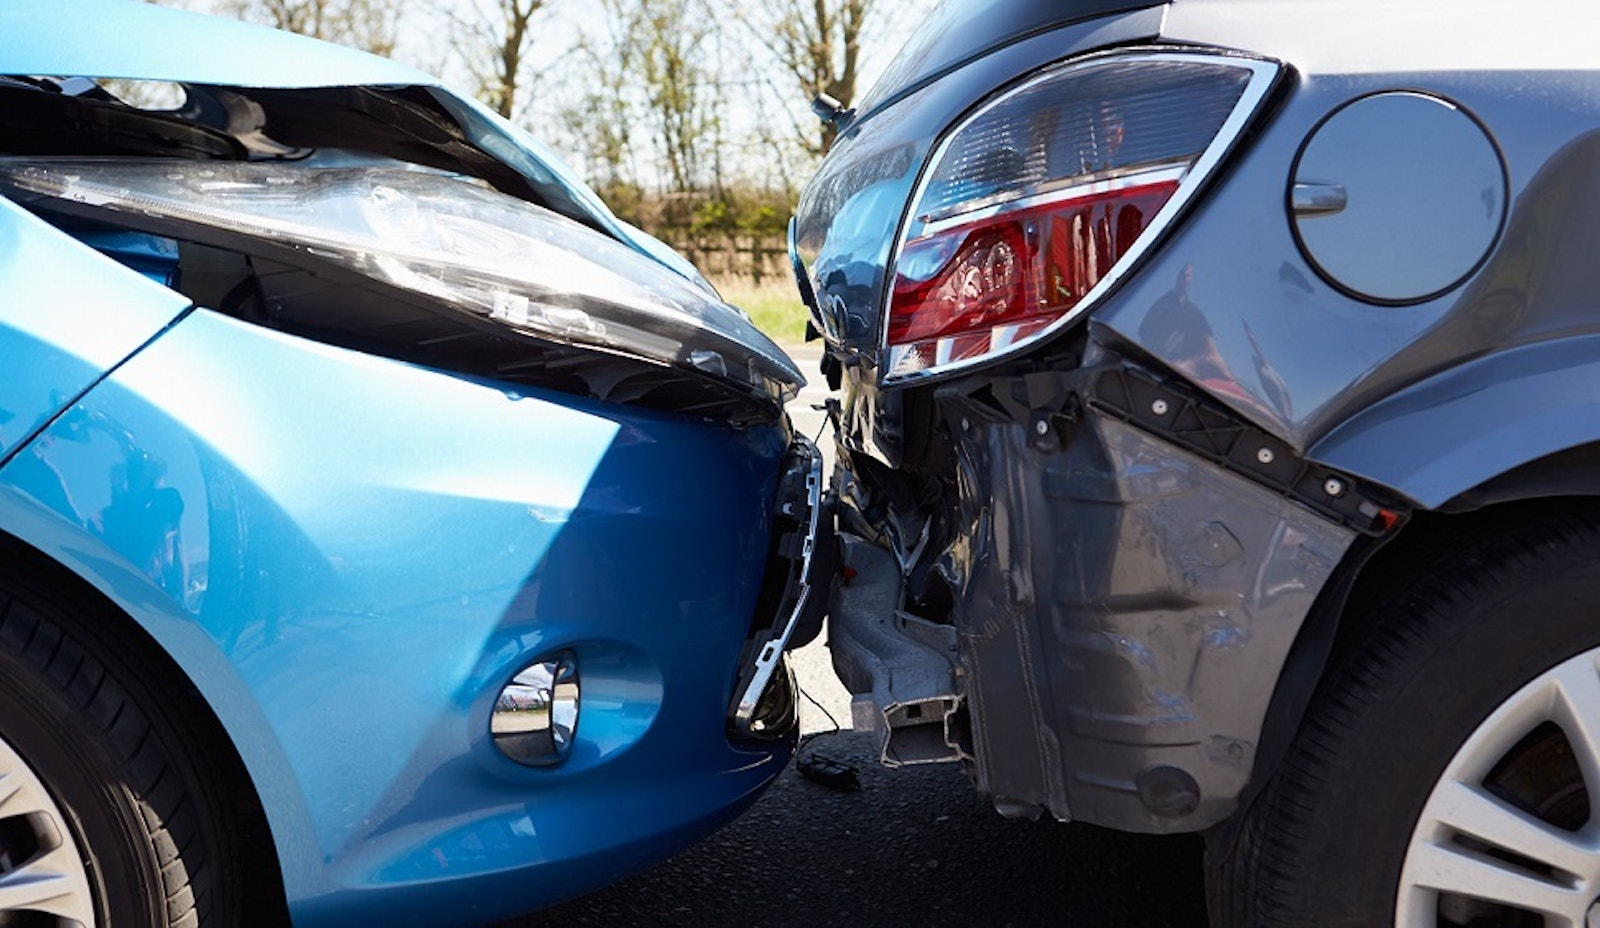 Two cars in a minor vehicle accident